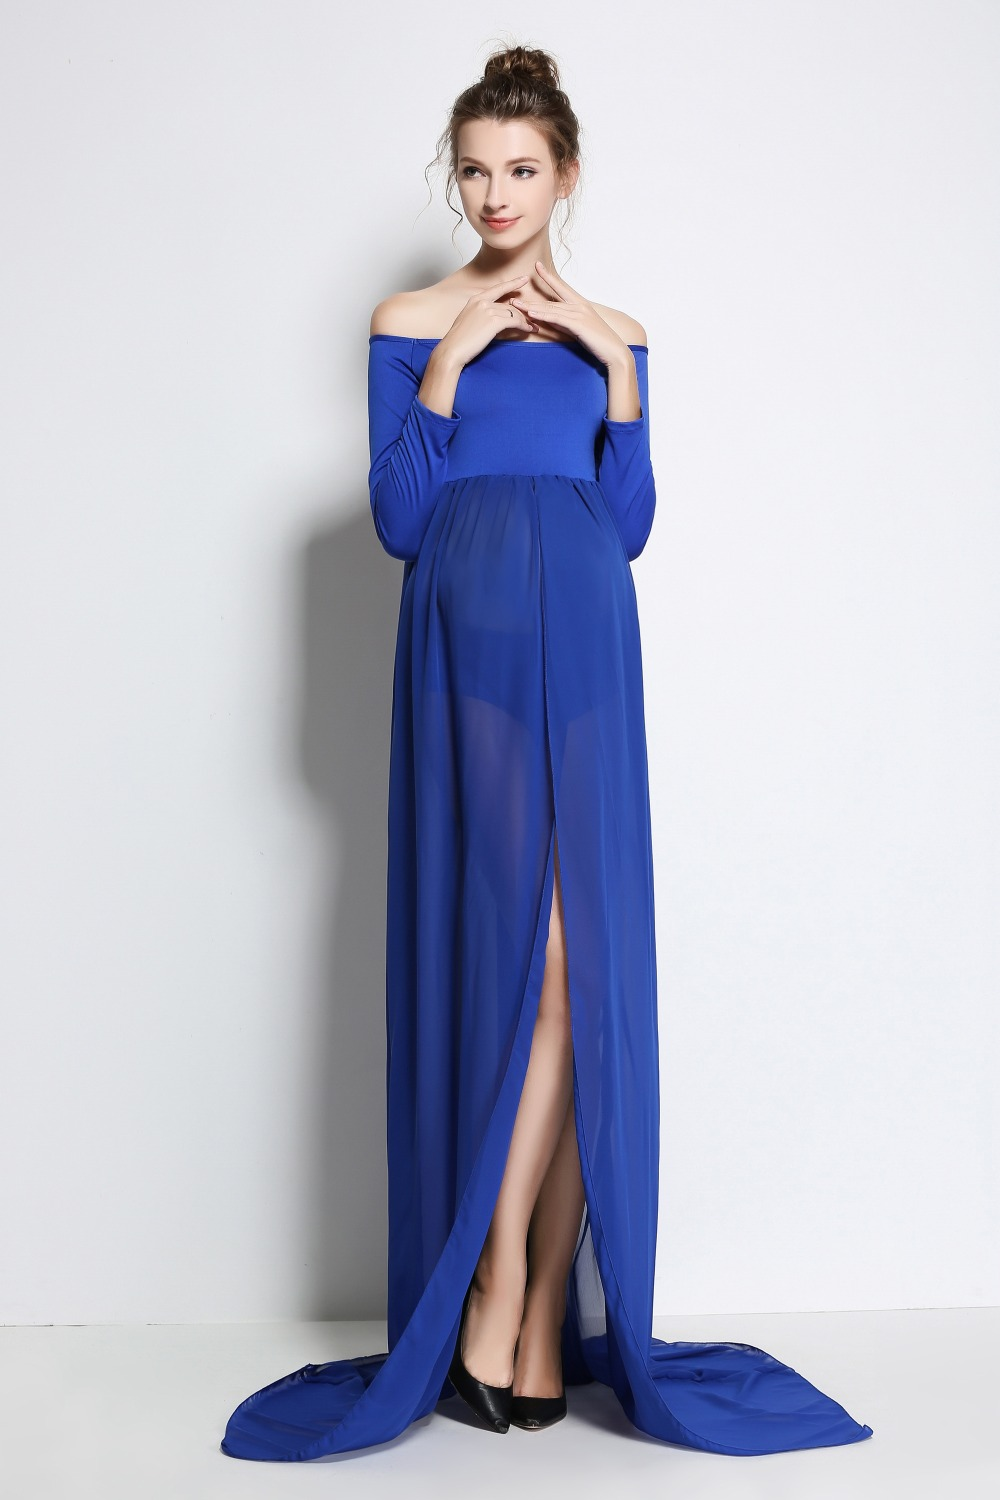 Blue Plus Size Pregnant Photography Props Pregnancy Maternity Dress  Maternity Photo Shoot Long Dress Baby Shower Fancy Dresses In Dresses From  Mother U0026 Kids ...